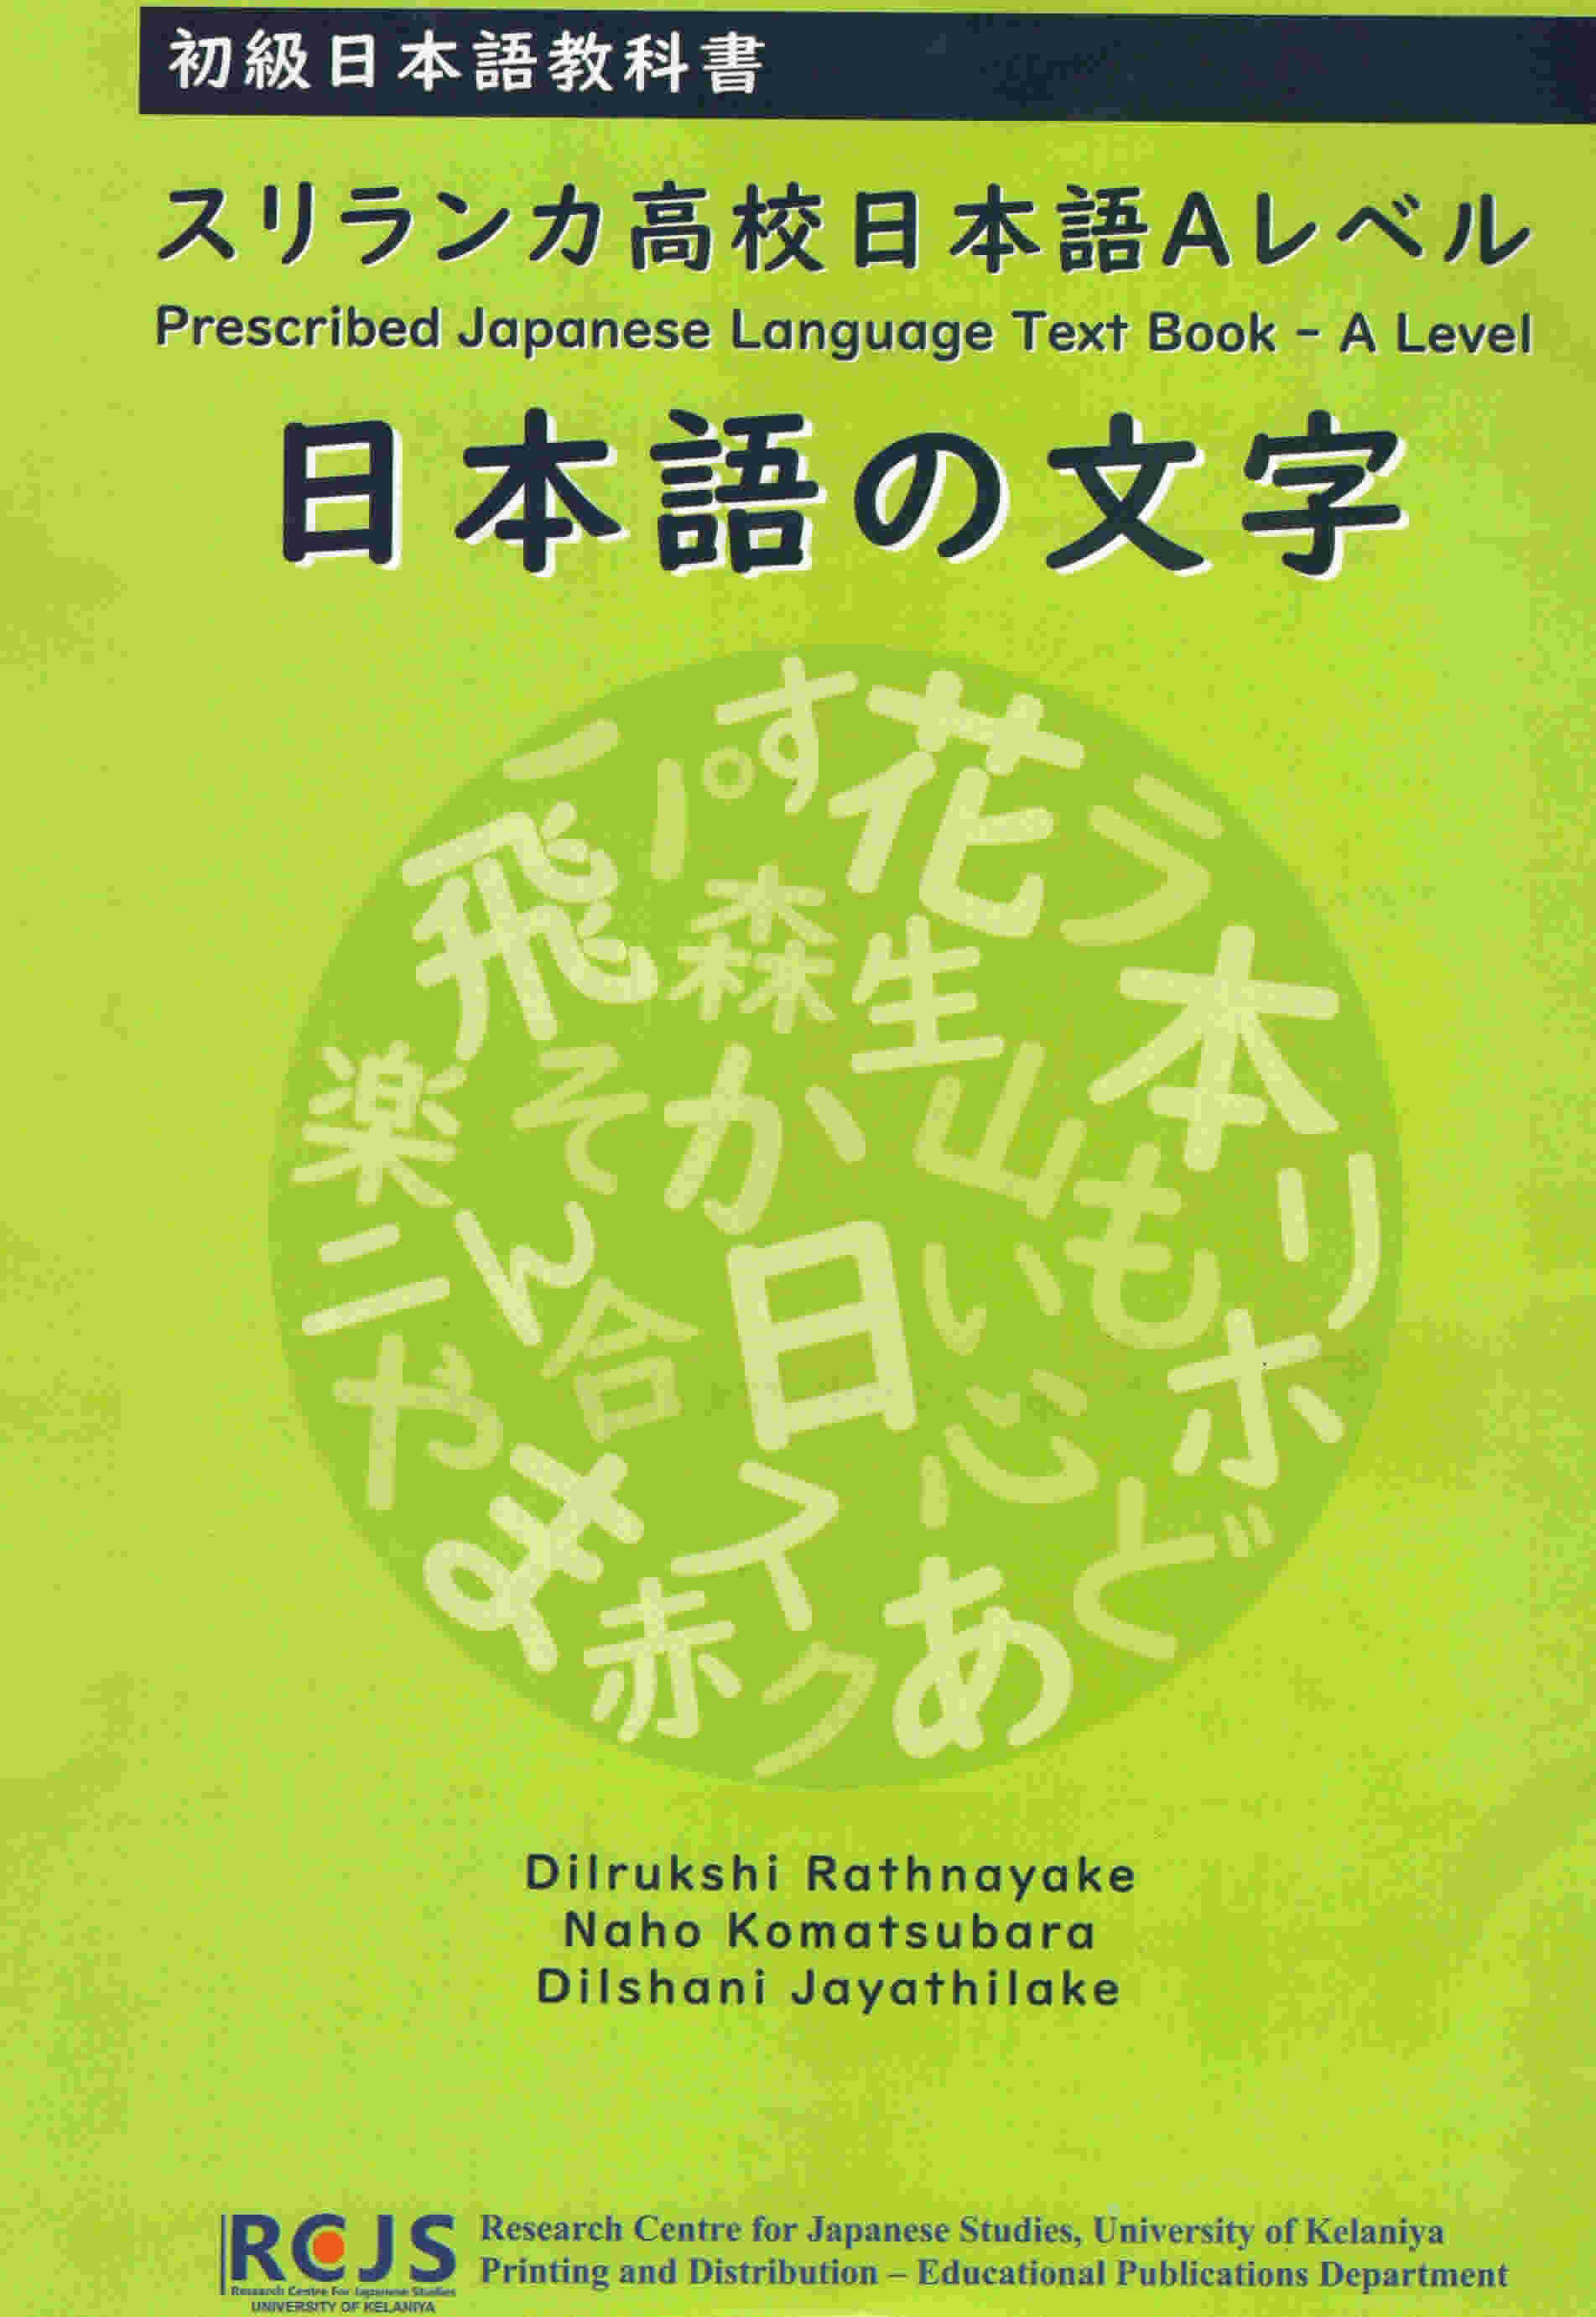 Prescribed Japanese Language Text Book - A Level